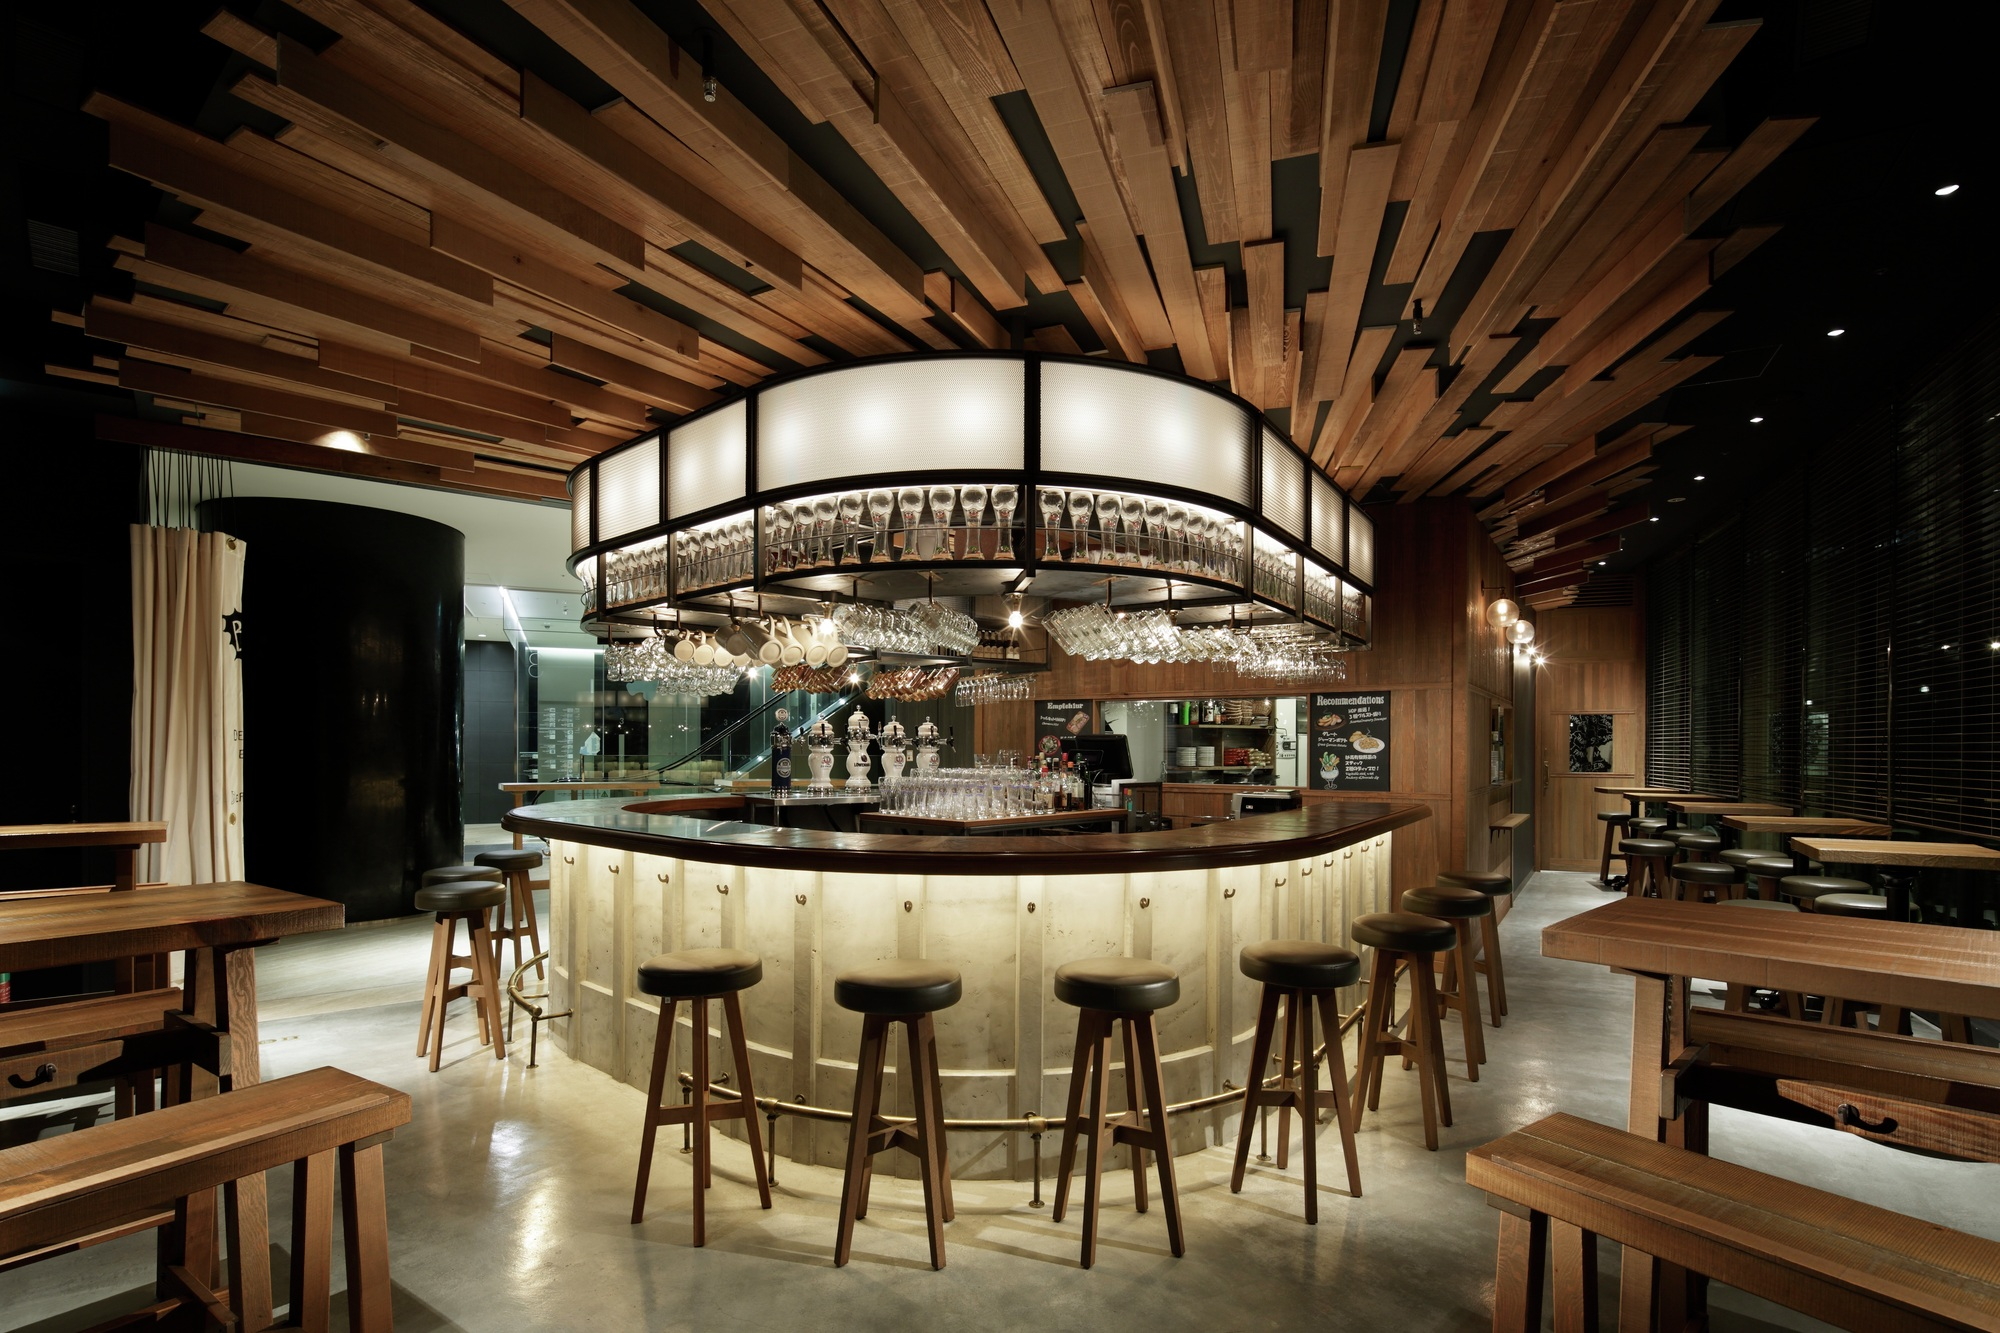 Genial Image Courtesy Of The Restaurant U0026 Bar Design Awards